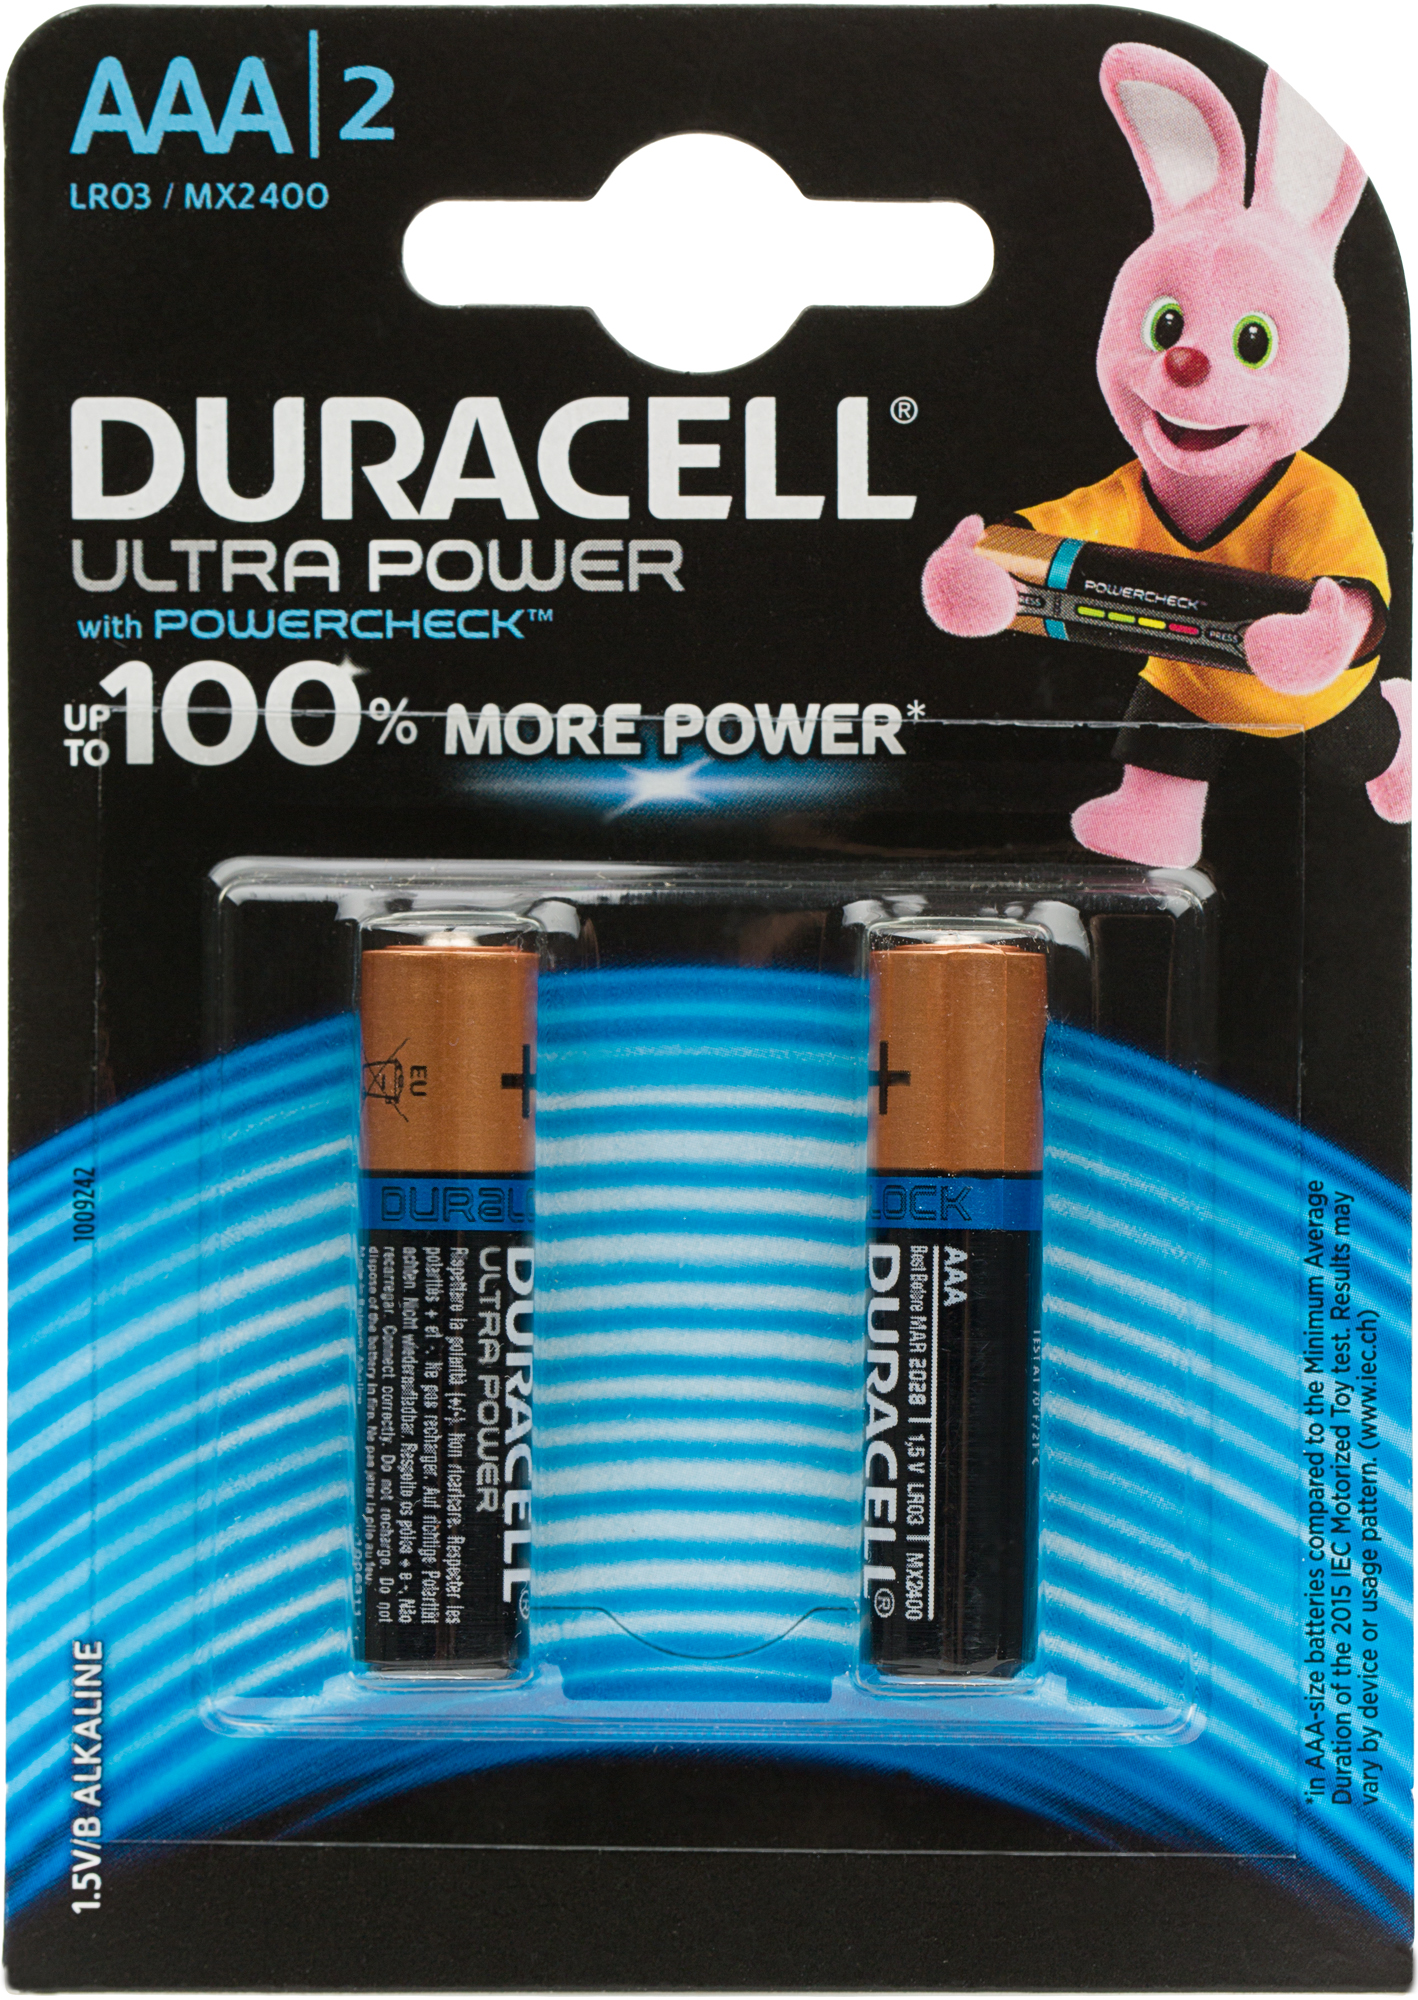 Duracell Батарейки щелочные Ultra Power ААА/LR03, 2 шт.